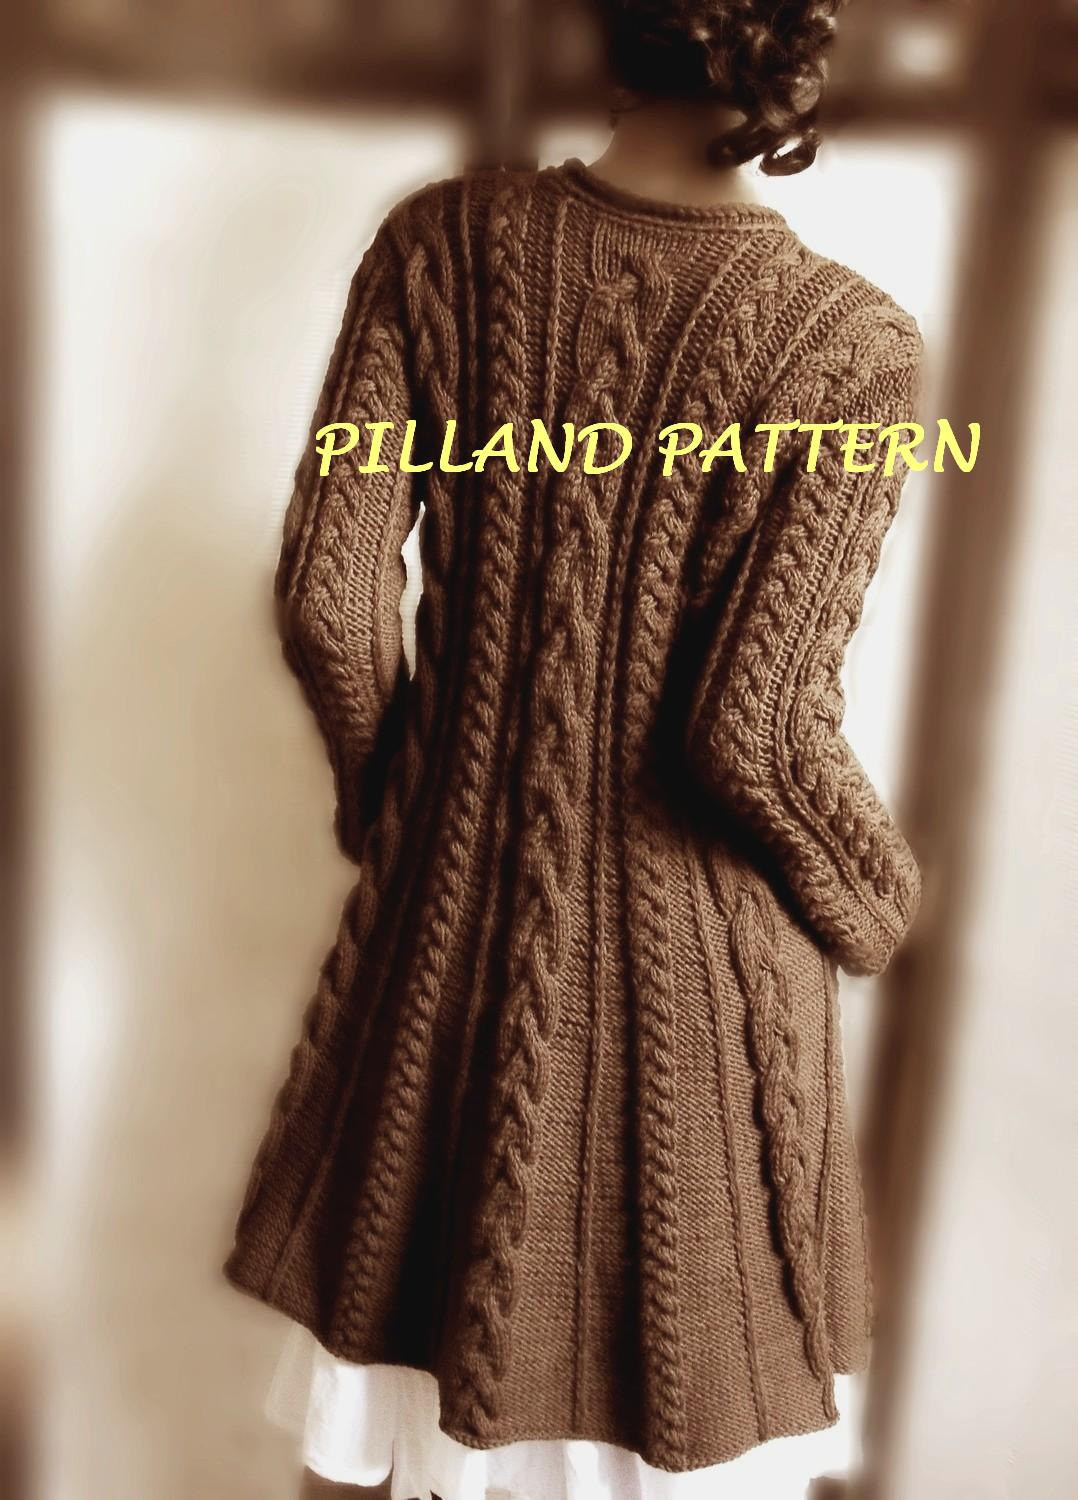 Luxury Sweater Coat Knitting Pattern Pdf Cable Knit A Line Coat Cable Knit Sweater Pattern Of Beautiful Cable Knit Dog Sweater Pattern Cable Knit Sweater Pattern